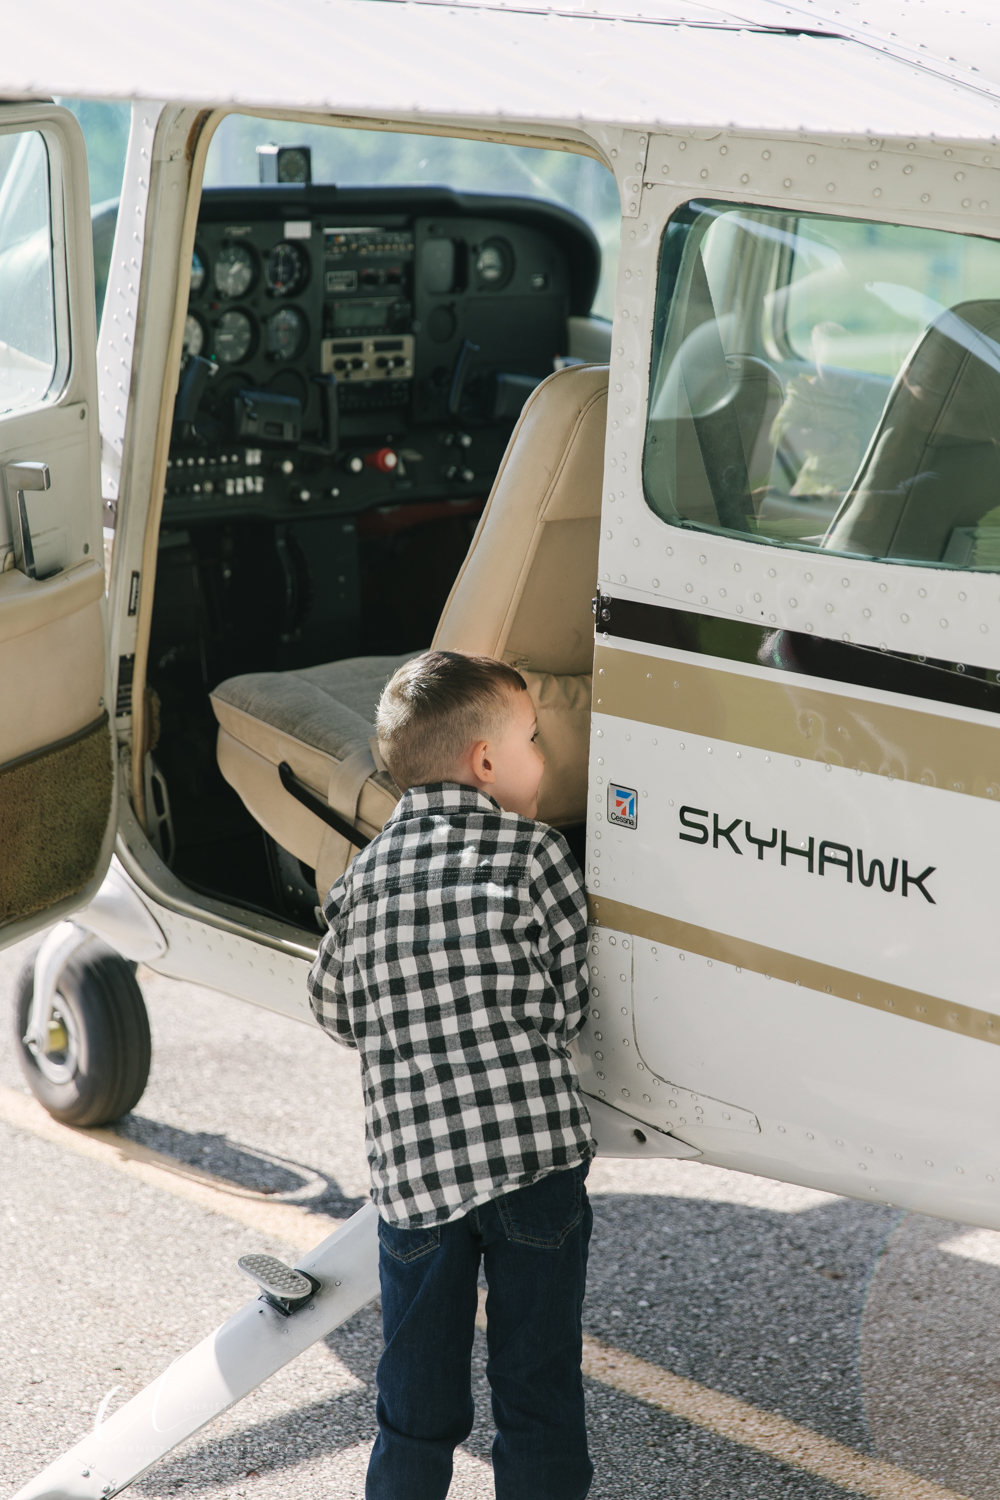 Aviation_Themed_Fourth_Birthday_at_Youngstown_Airport_Hanger_Vienna_OH_by_Child_and_Family_Photographer_Christie_Leigh_Photo-4.JPG